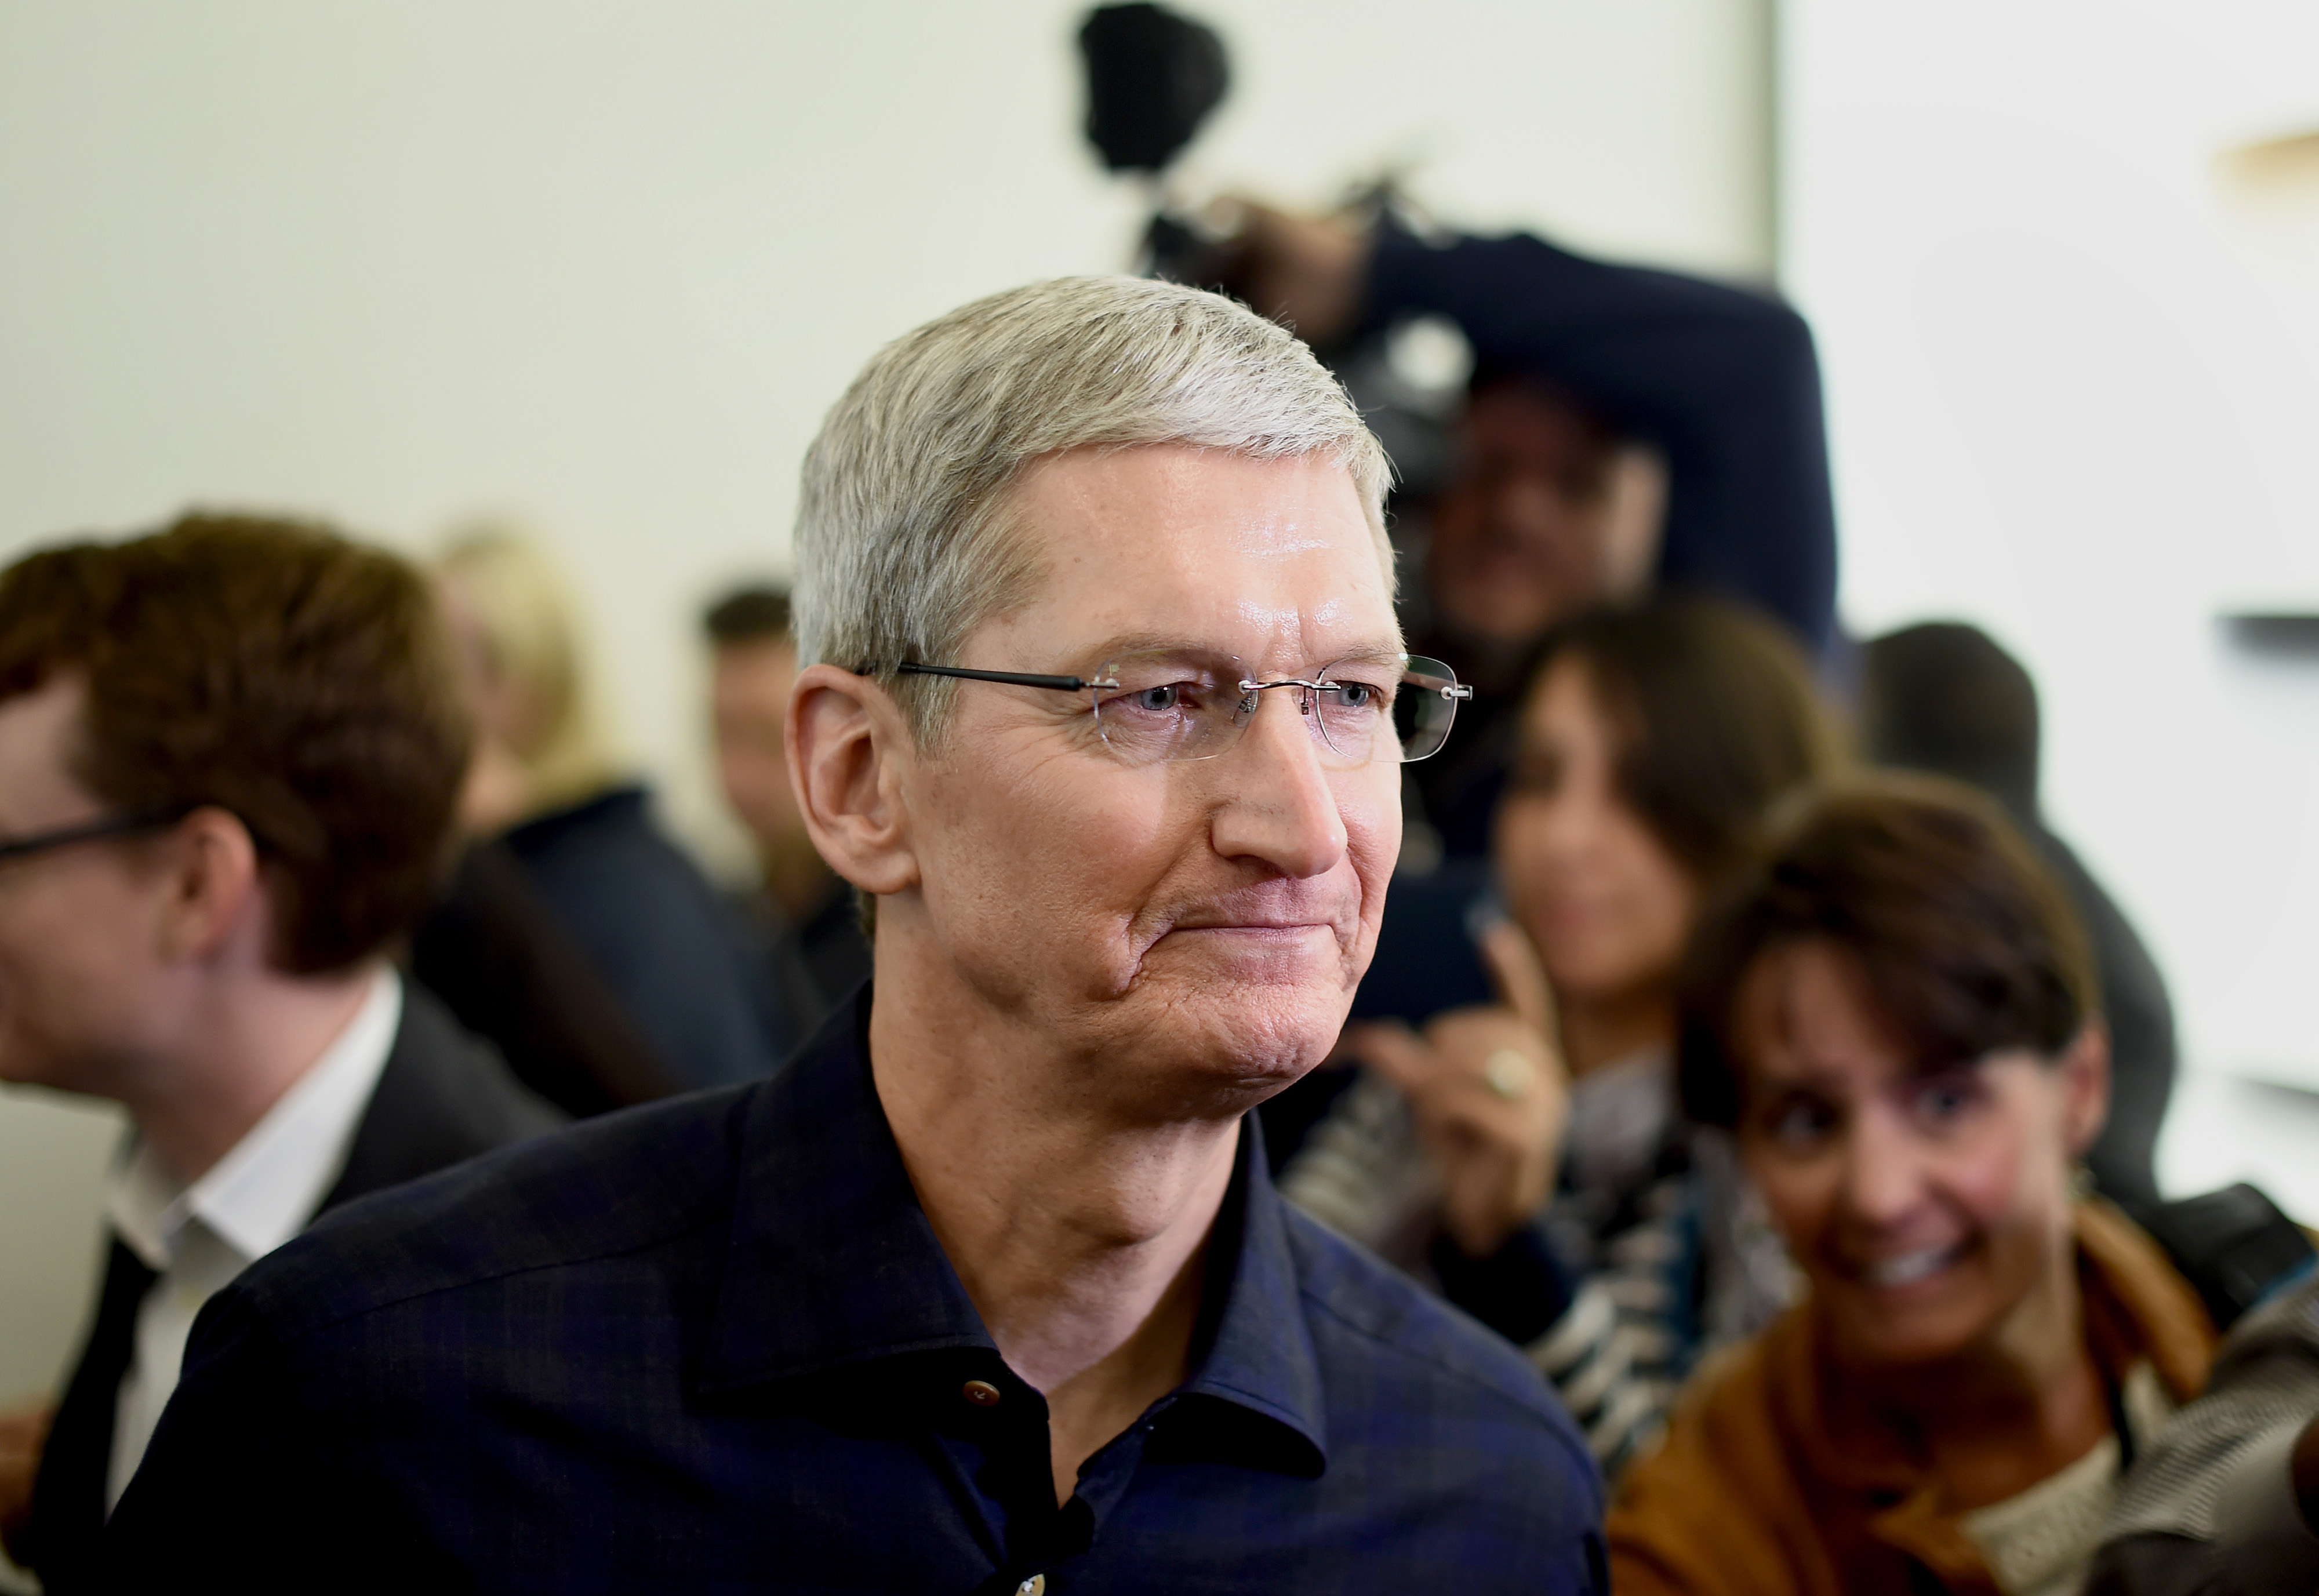 Apple CEO Tim Cook speaks with members of the media after a product announcement in Cupertino, California, U.S., on Thursday, Oct. 16, 2014.